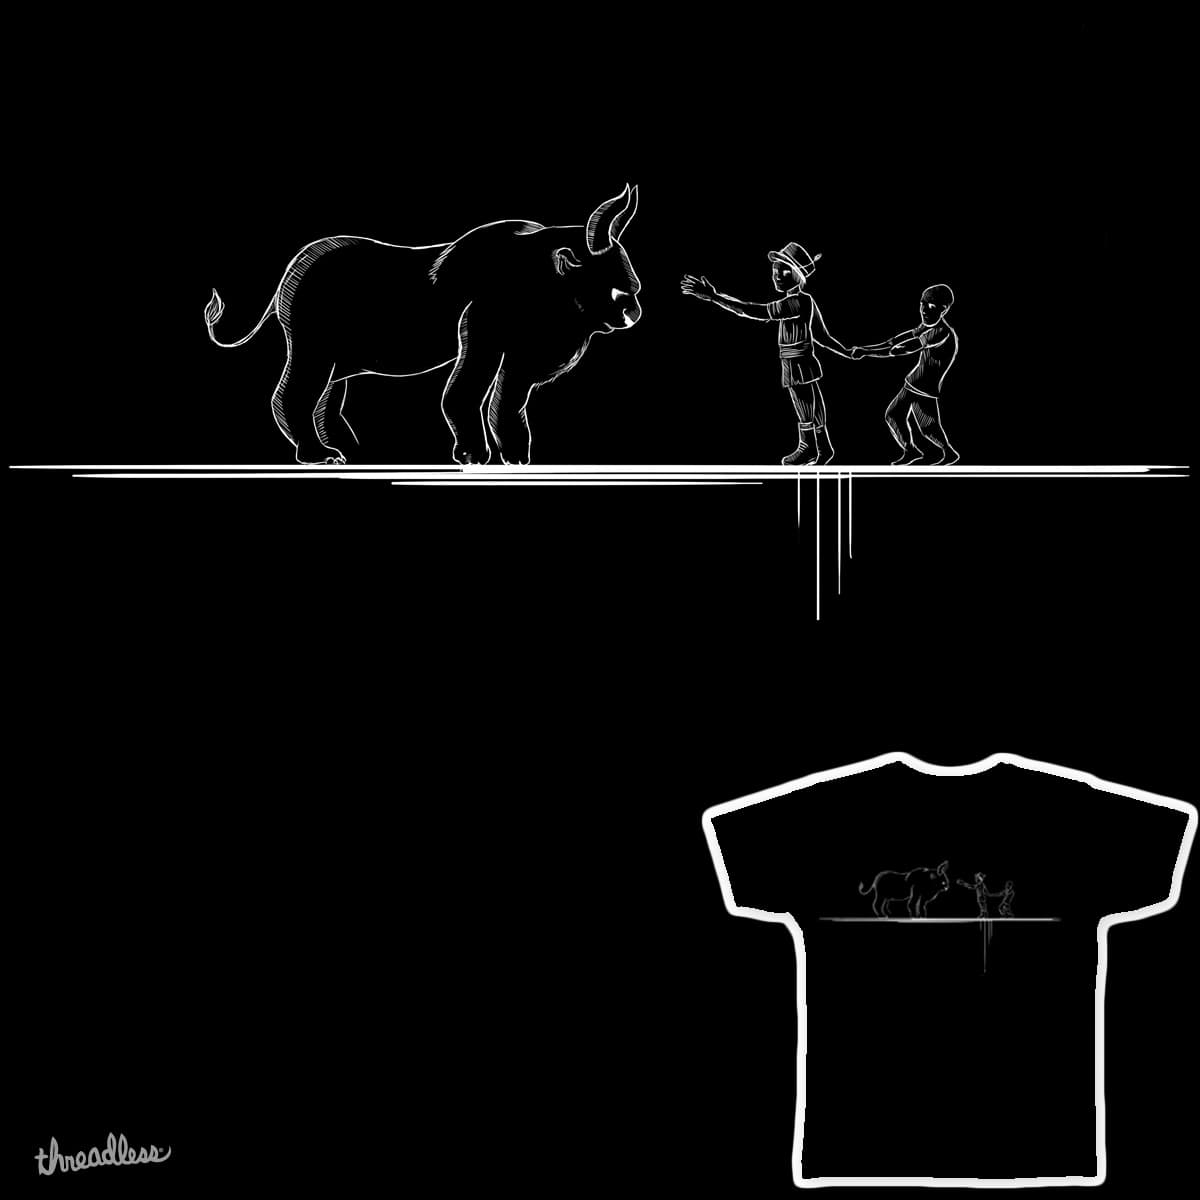 Danny has a Death Wish by Michael27 on Threadless